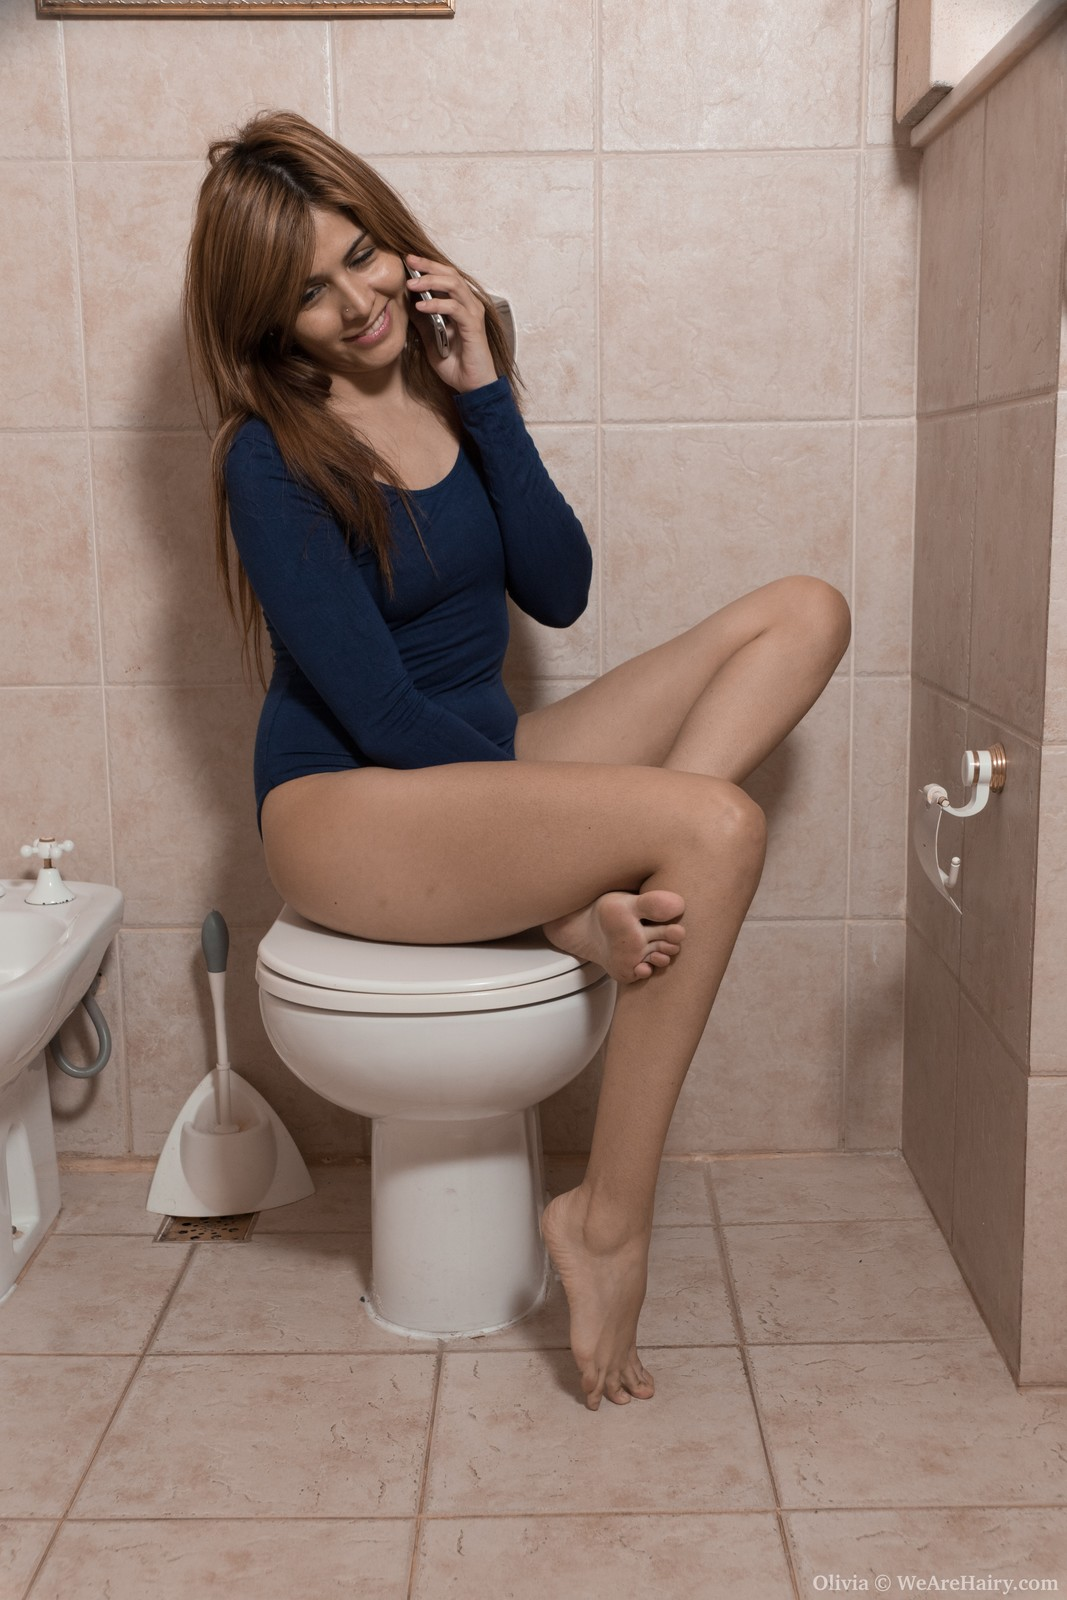 Olivia poses naked by toilet with a surprise